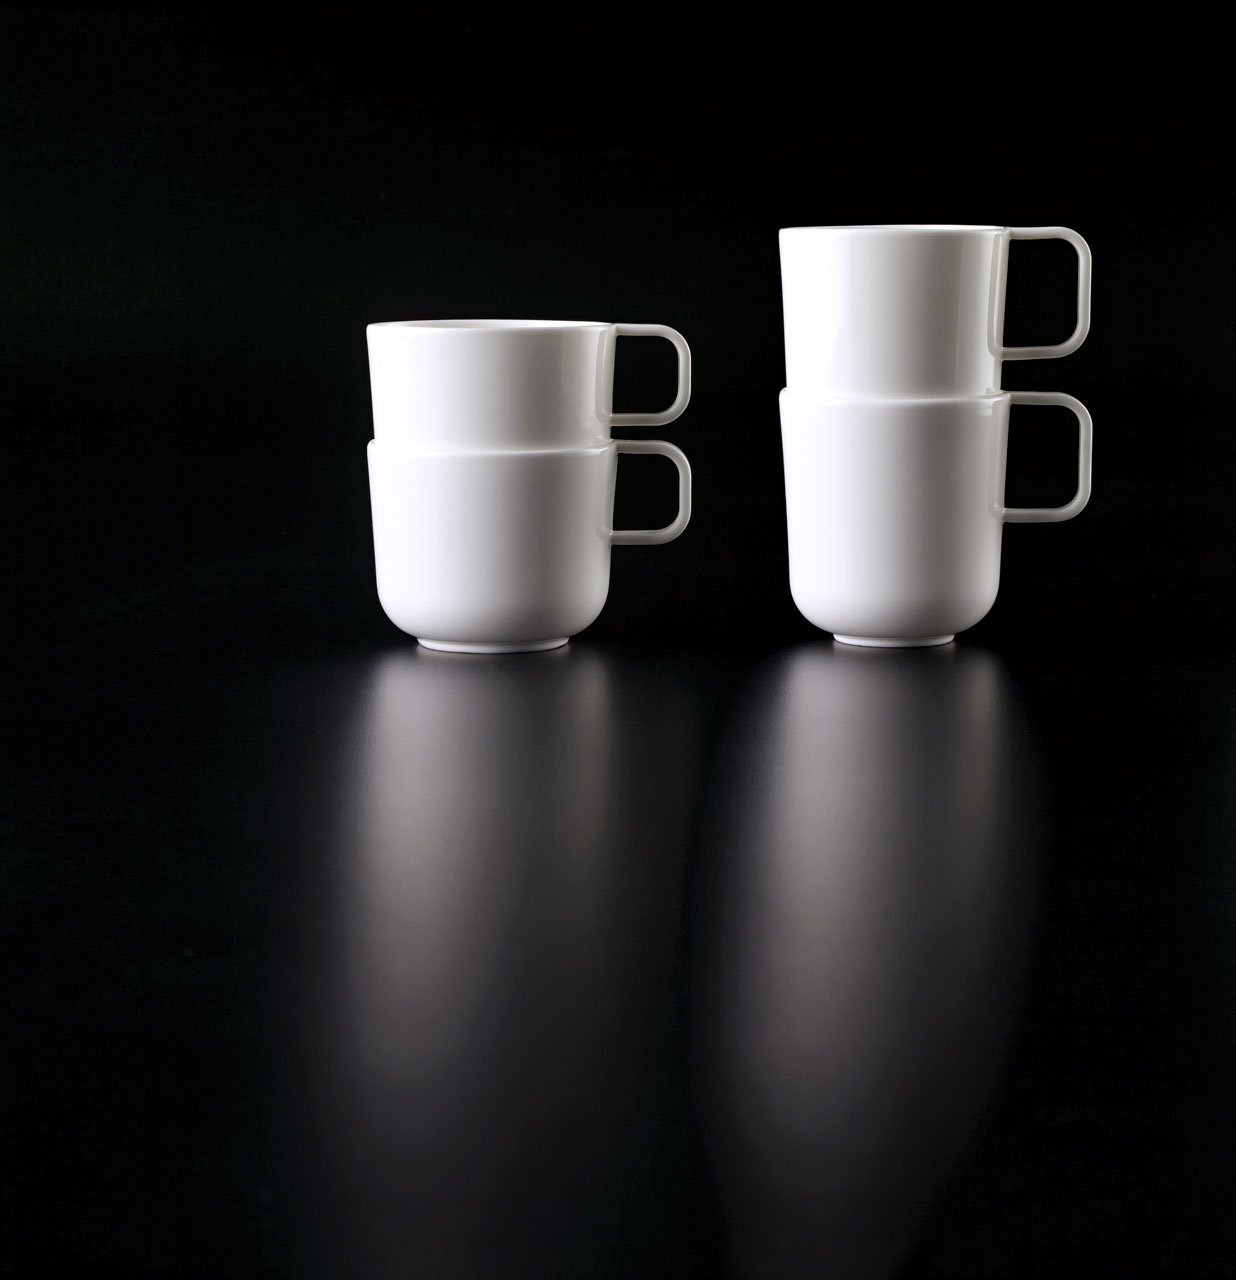 Bent Brandt - TABL white bone china S2 cups and mugs